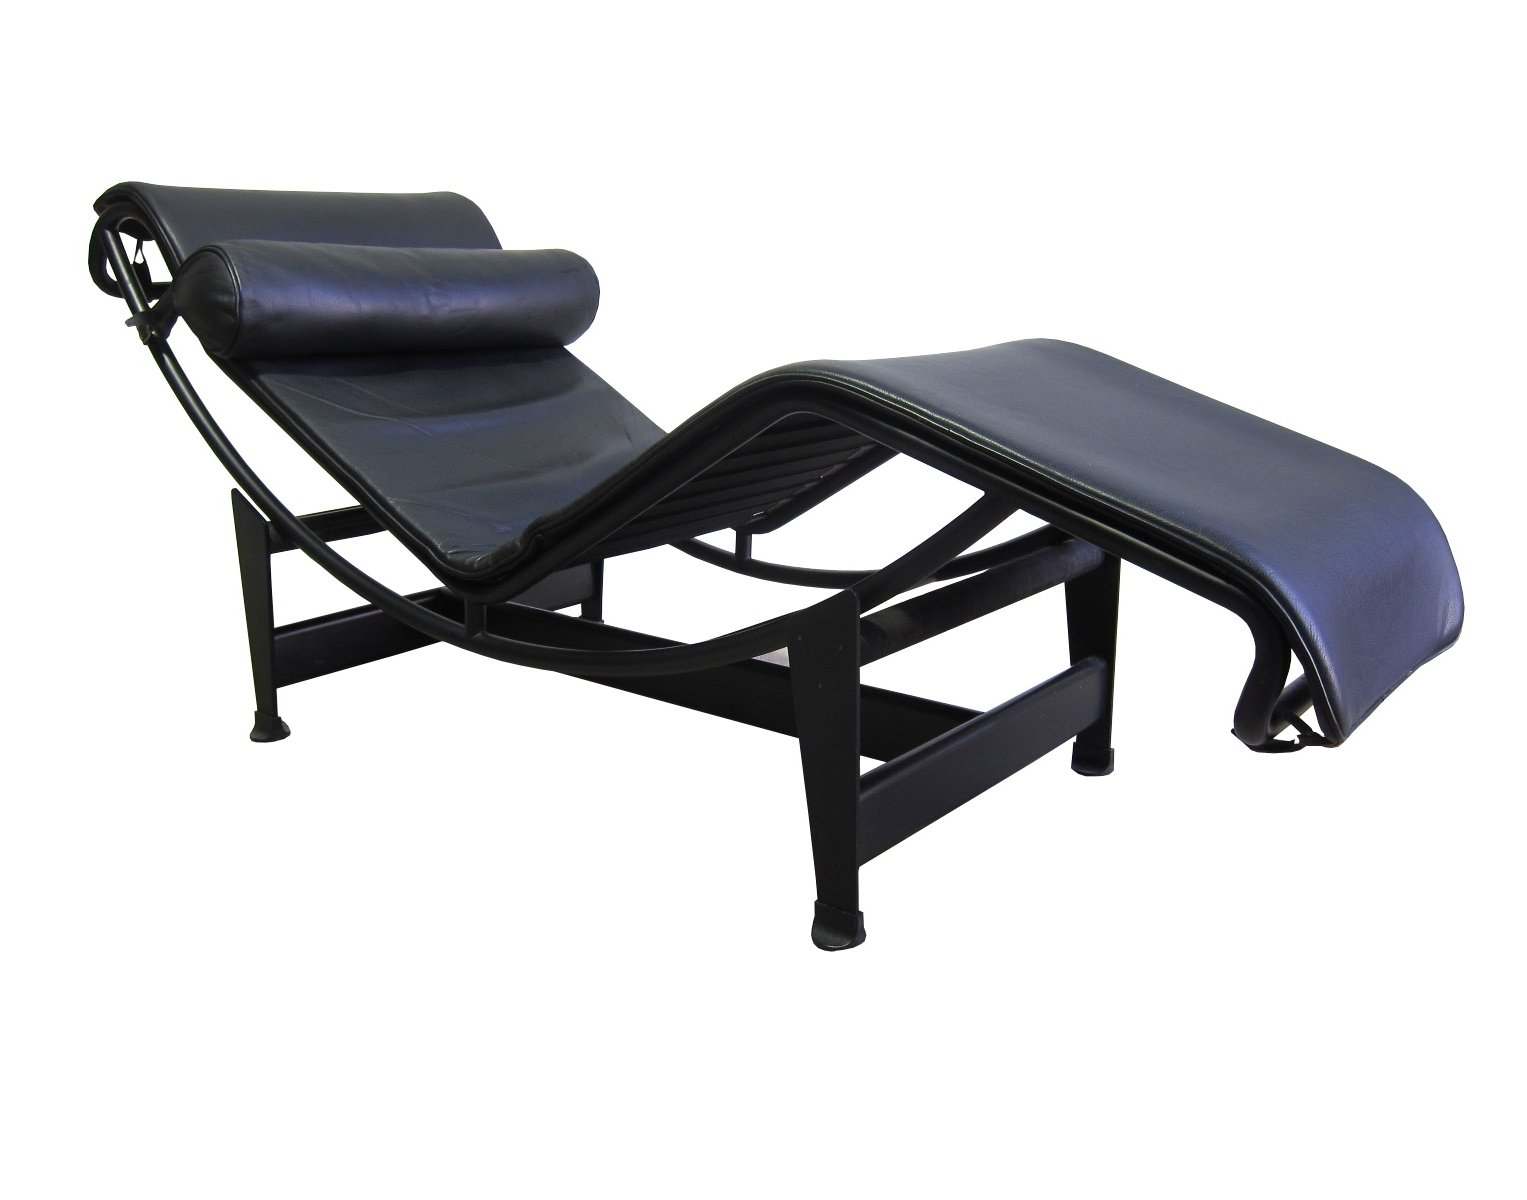 Vintage cassina lc4 39 chaise longue 39 black version 71827 for Buy chaise longue